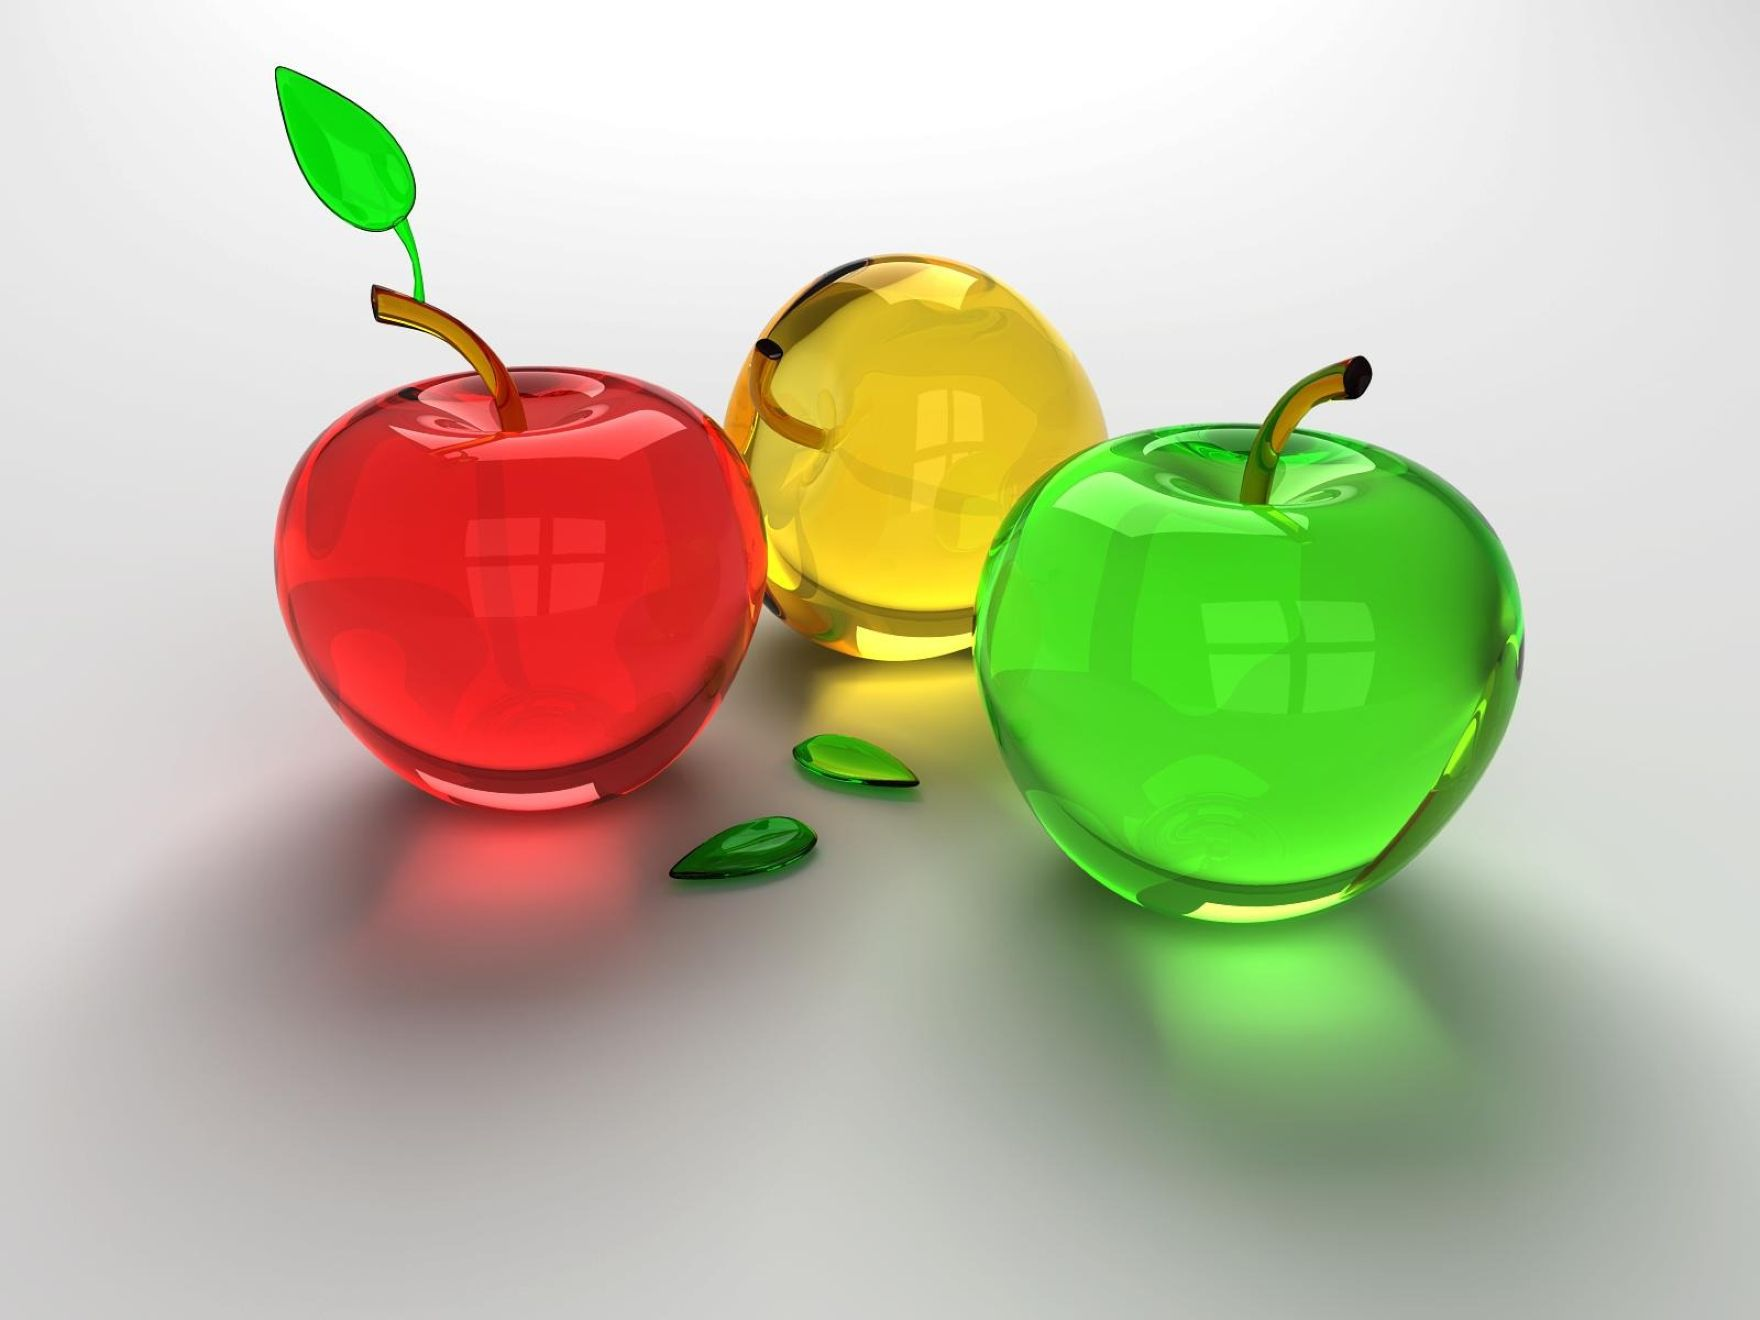 Download free HD Download Background 3D Apple Colorful Wallpaper, image